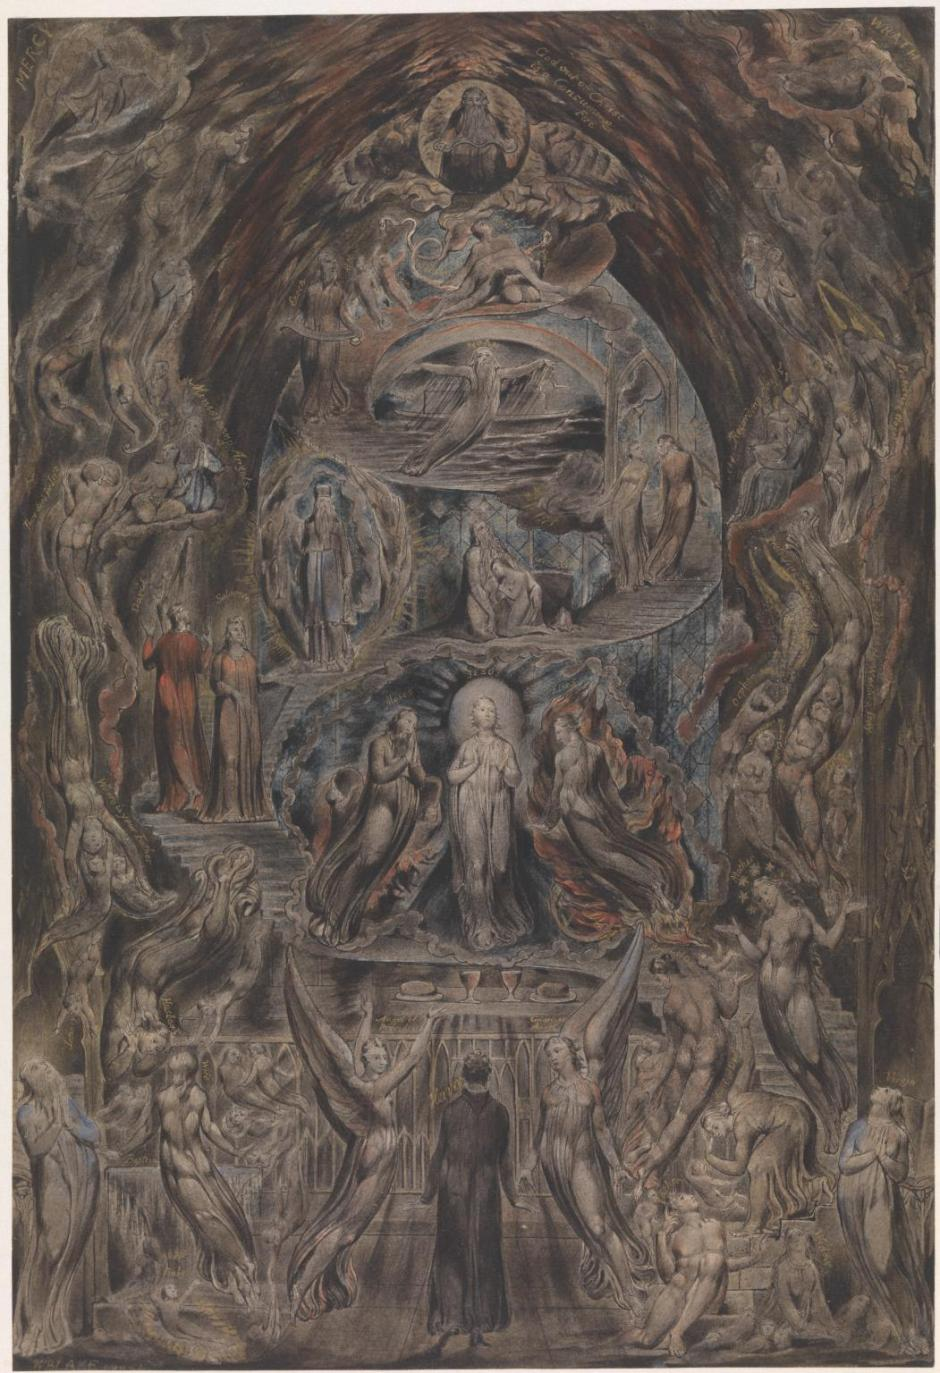 Epitome of James Hervey's 'Meditations among the Tombs' c.1820-5 by William Blake 1757-1827